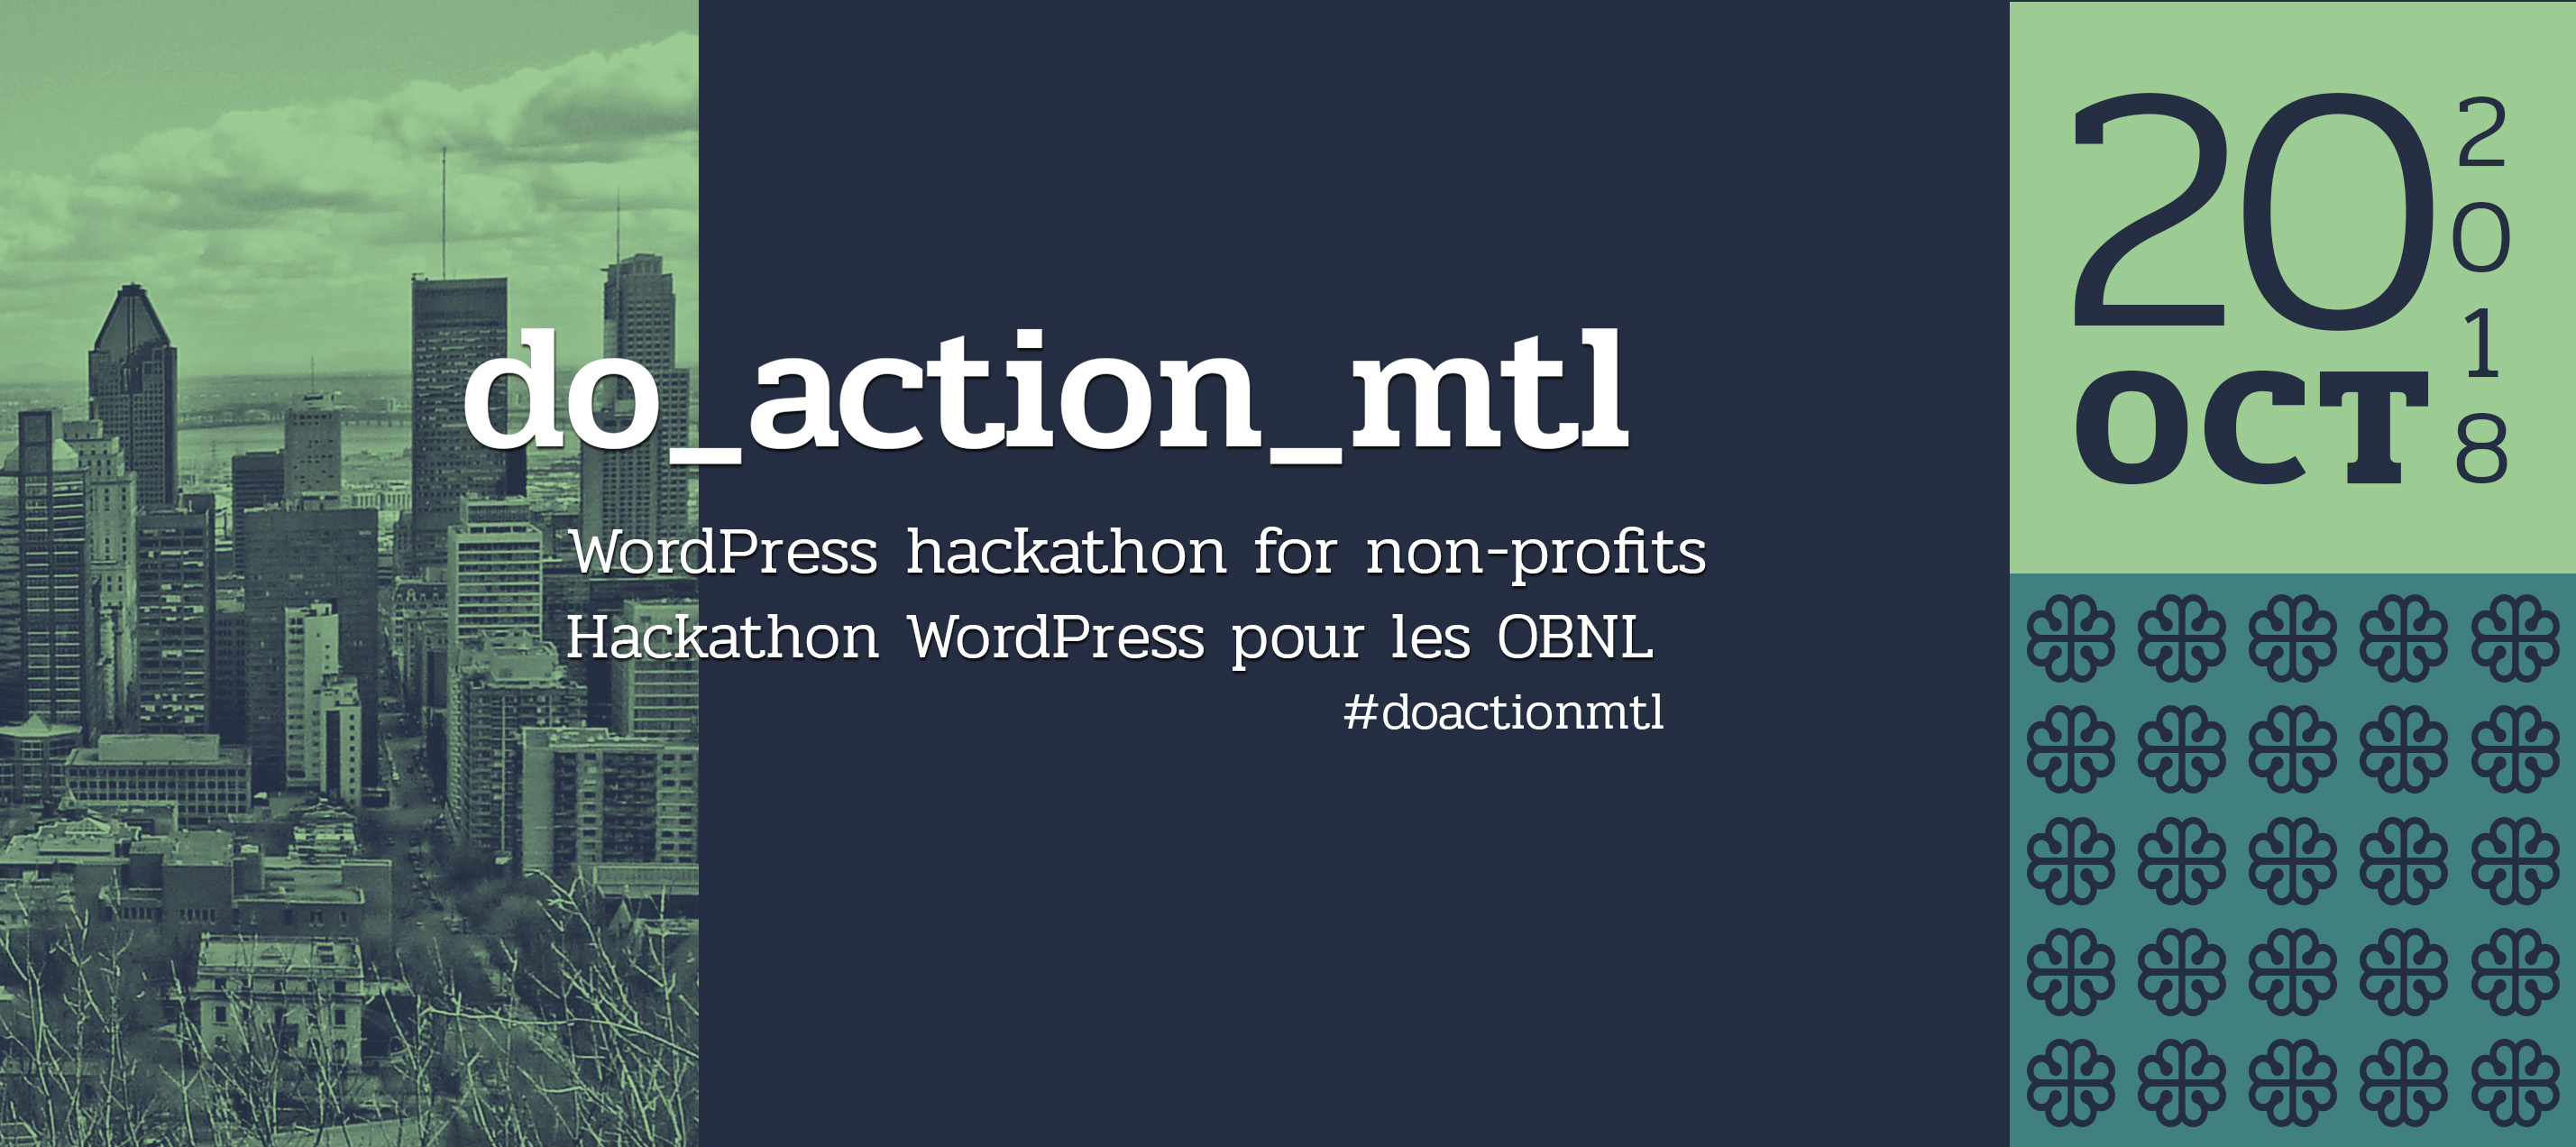 do_action_mtl happening on 20 October